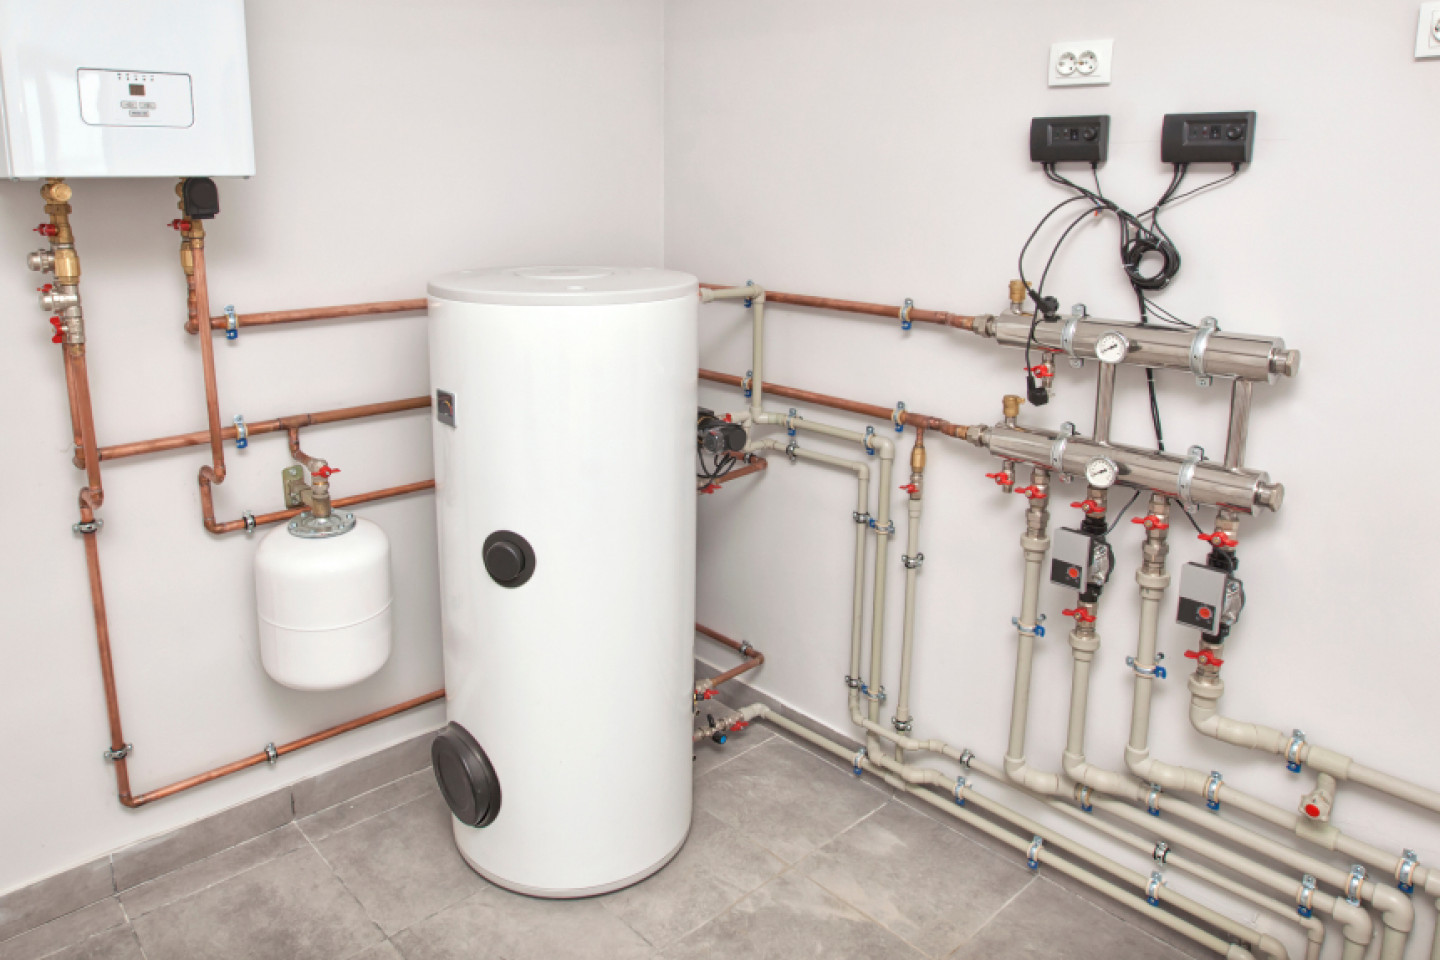 Keep Your Home Comfortable With an Efficient New Boiler